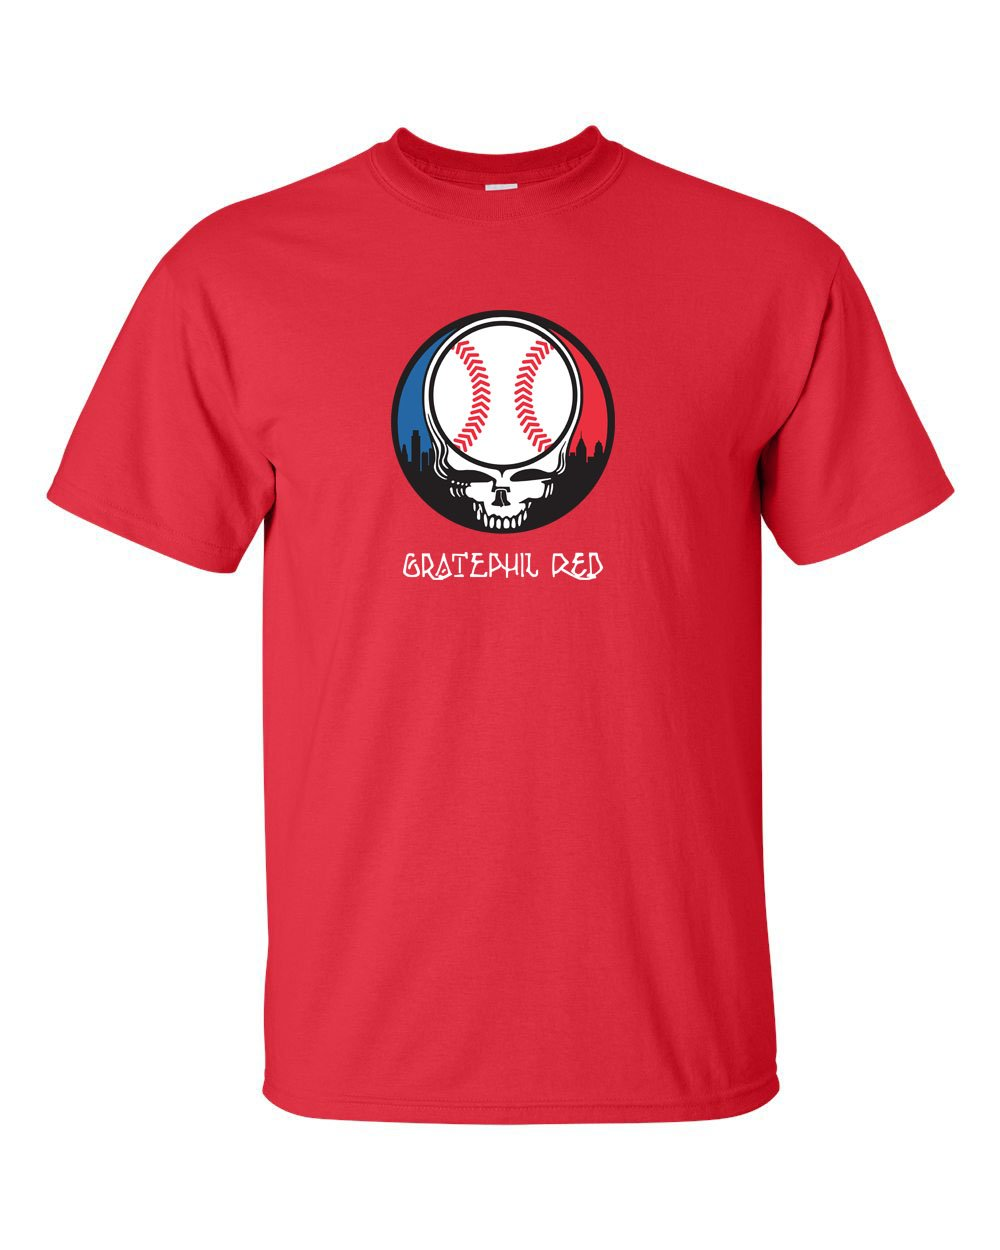 Gratephil Red Mens/Unisex T-Shirt